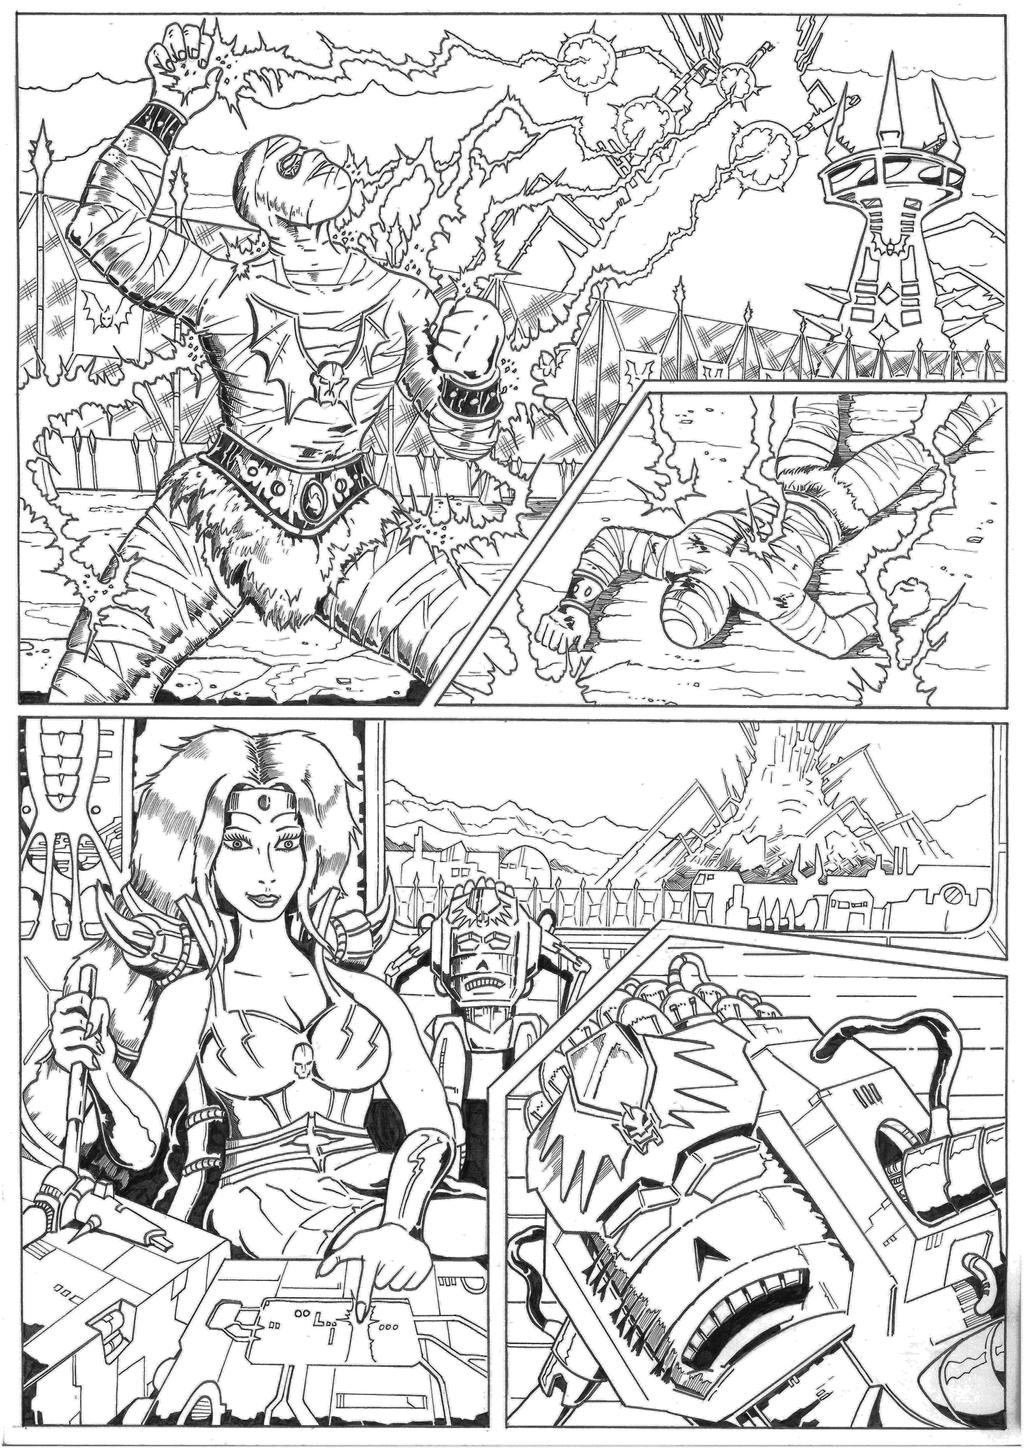 The Coming of the Towers page 6 inks